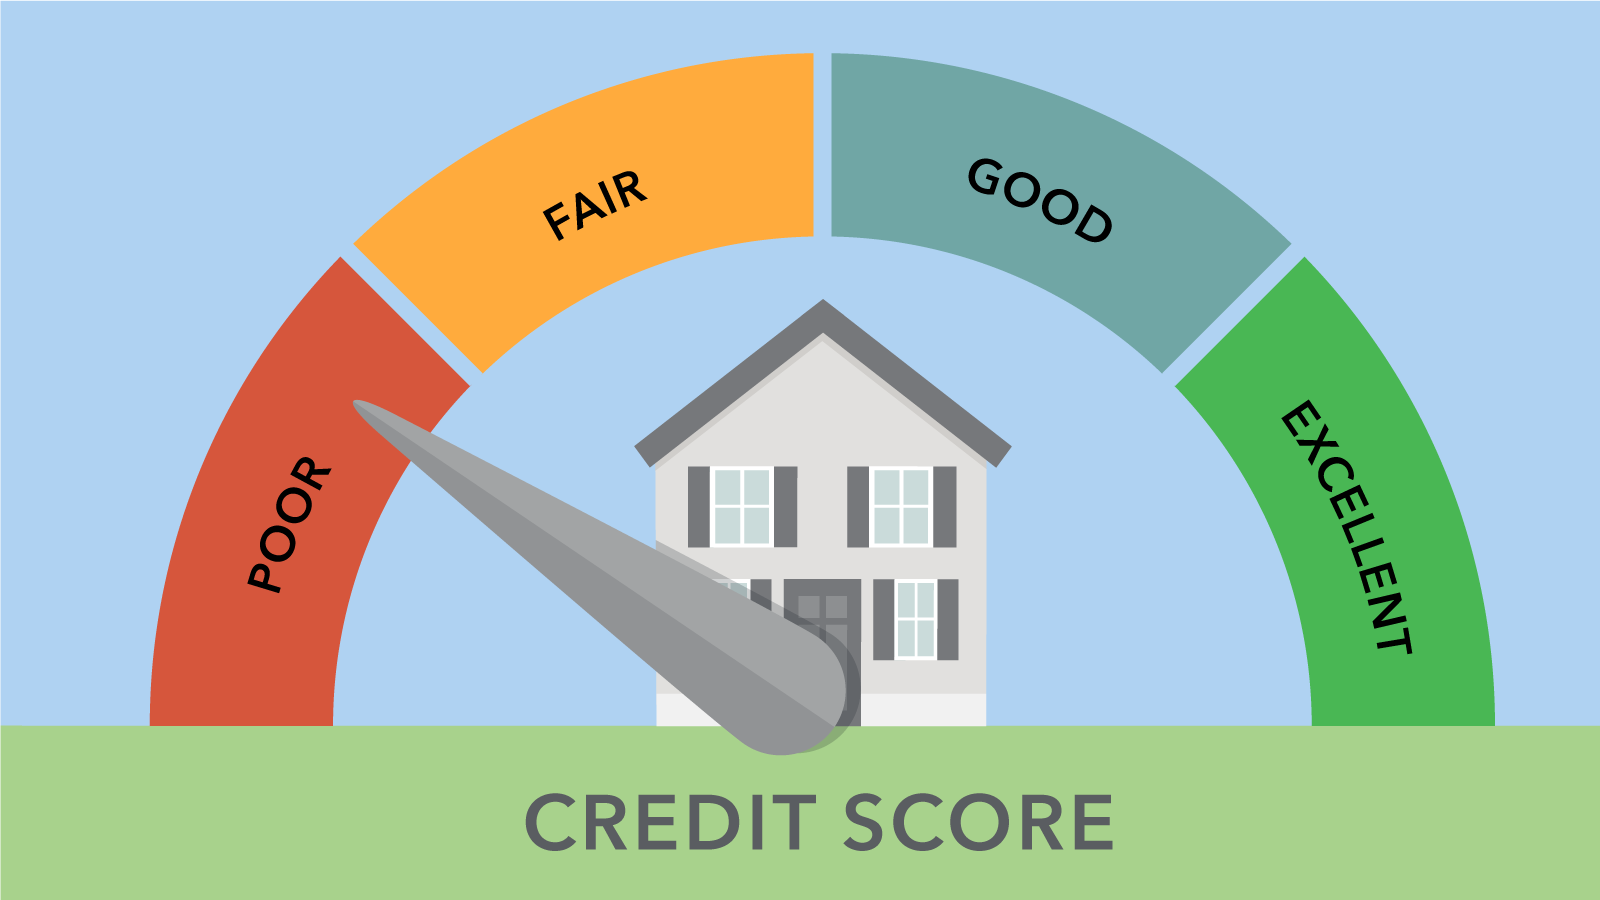 Credit Score Help Best Ways To Improve Your Credit Rating Check More At Https Www Thelibraryofa Credit Score Improve Your Credit Score Loans For Bad Credit